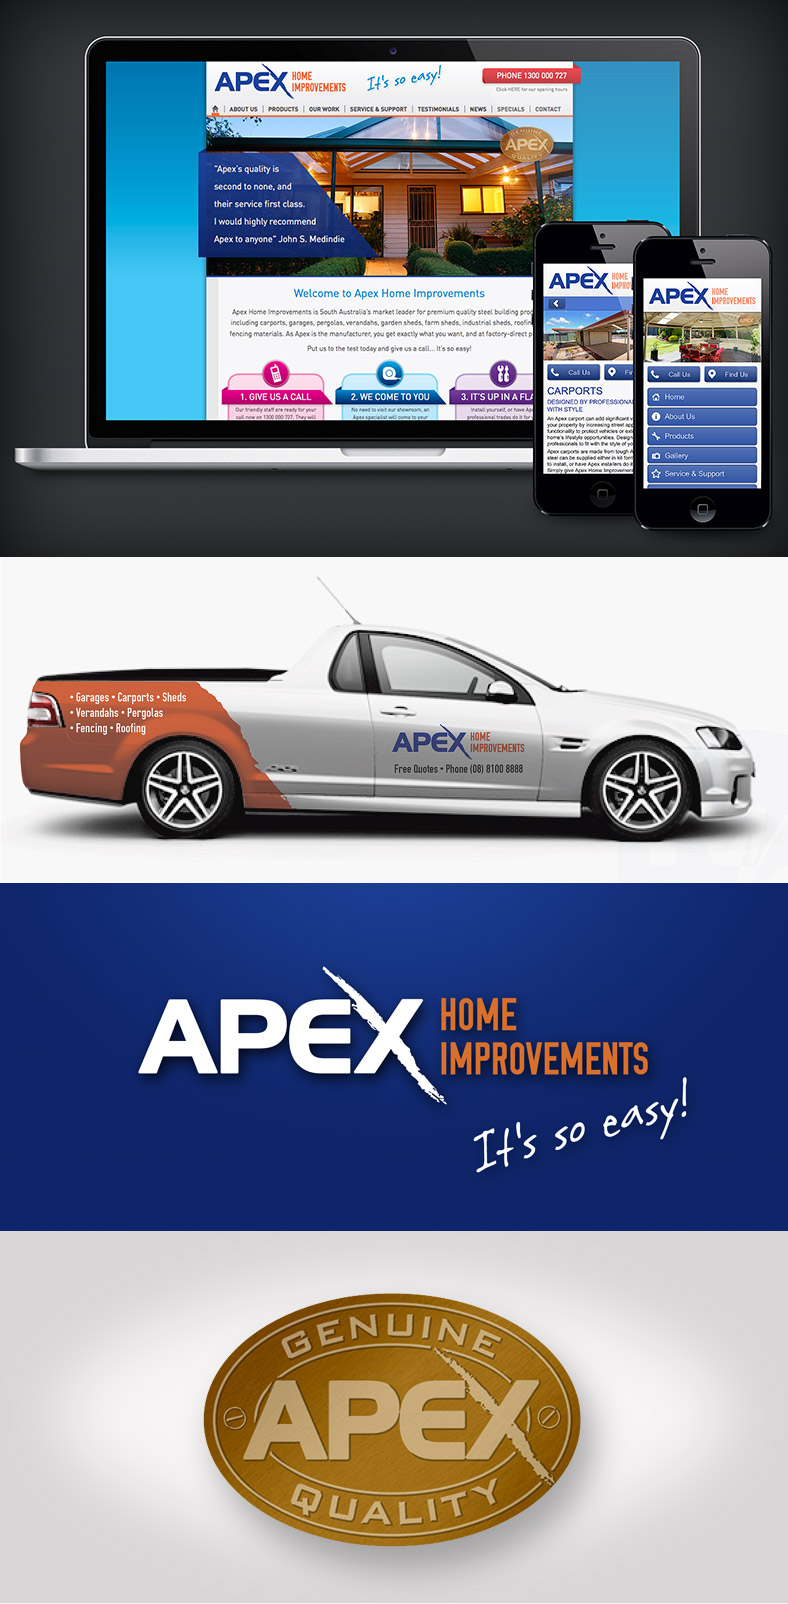 Apex Home Improvements Advertising and Marketing Campaign